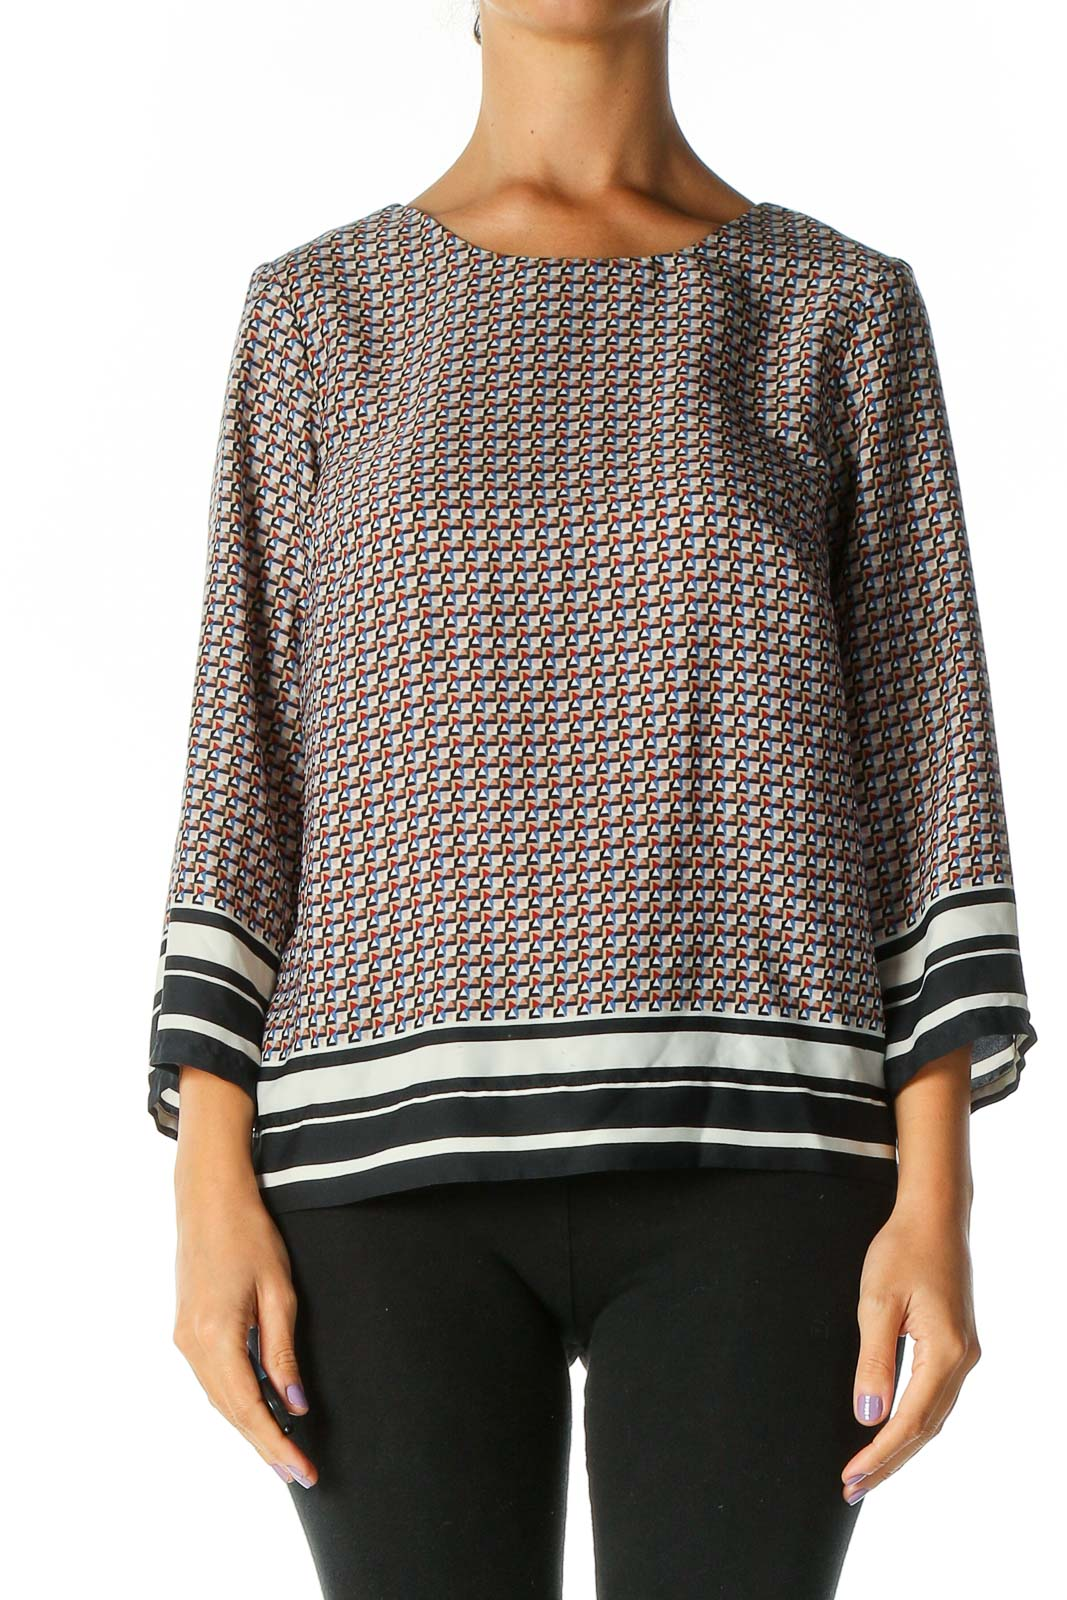 Blue Geometric Print Casual Top Front